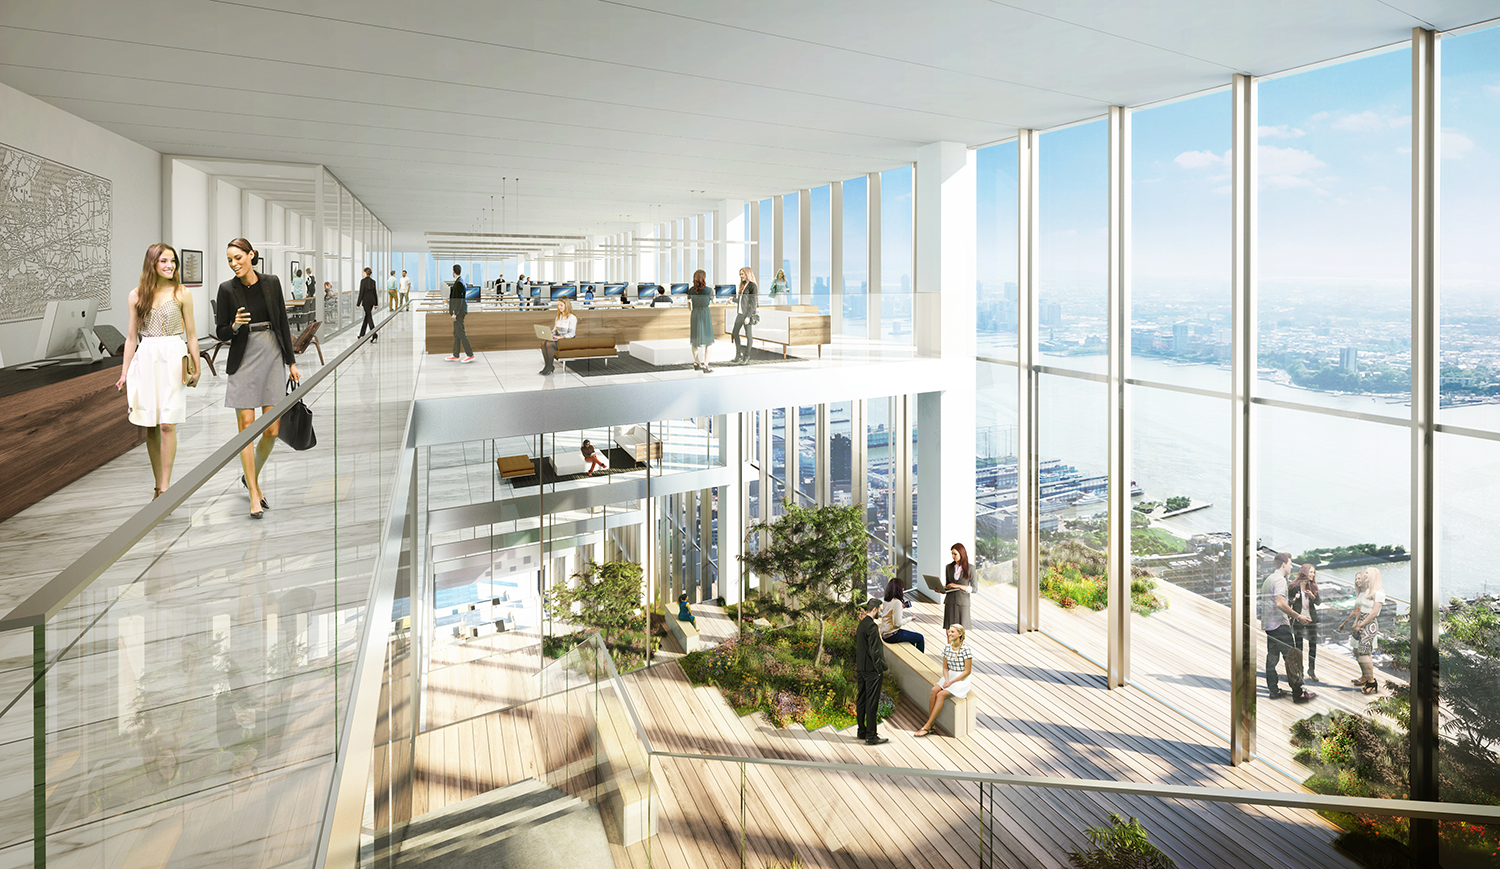 Rendering of 66 Hudson Boulevard showing duplex atriums. Credit: BIG/Tishman Speyer.